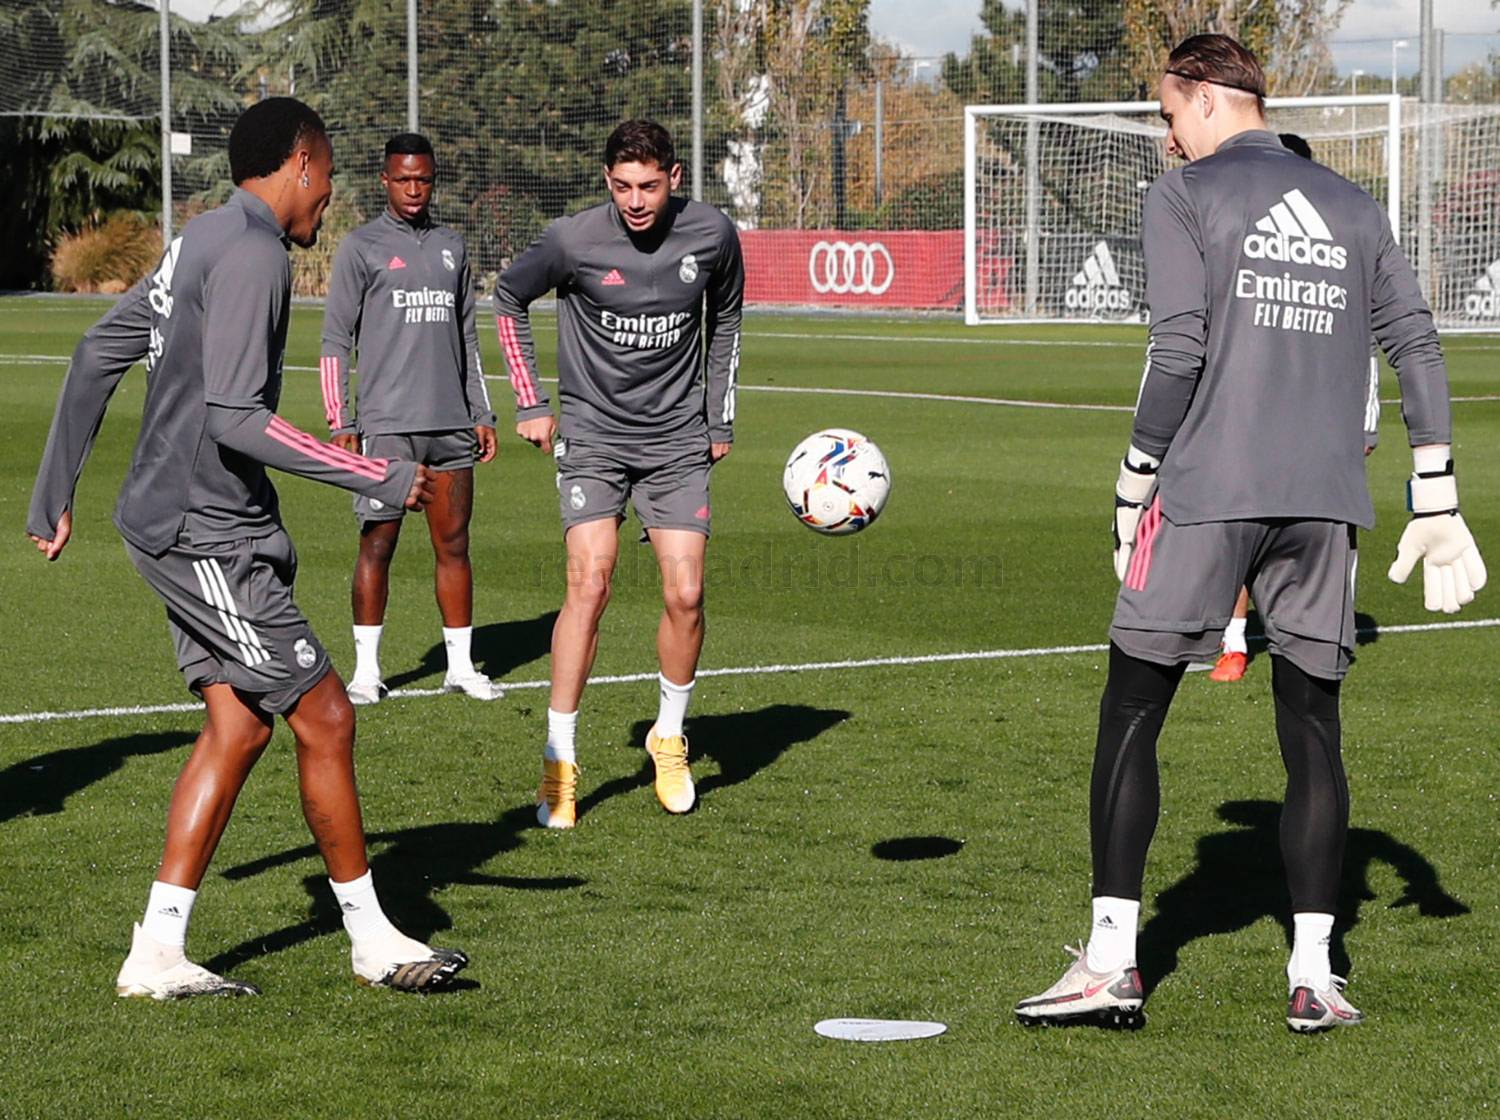 Real Madrid - Entrenamiento del Real Madrid  - 15-10-2020